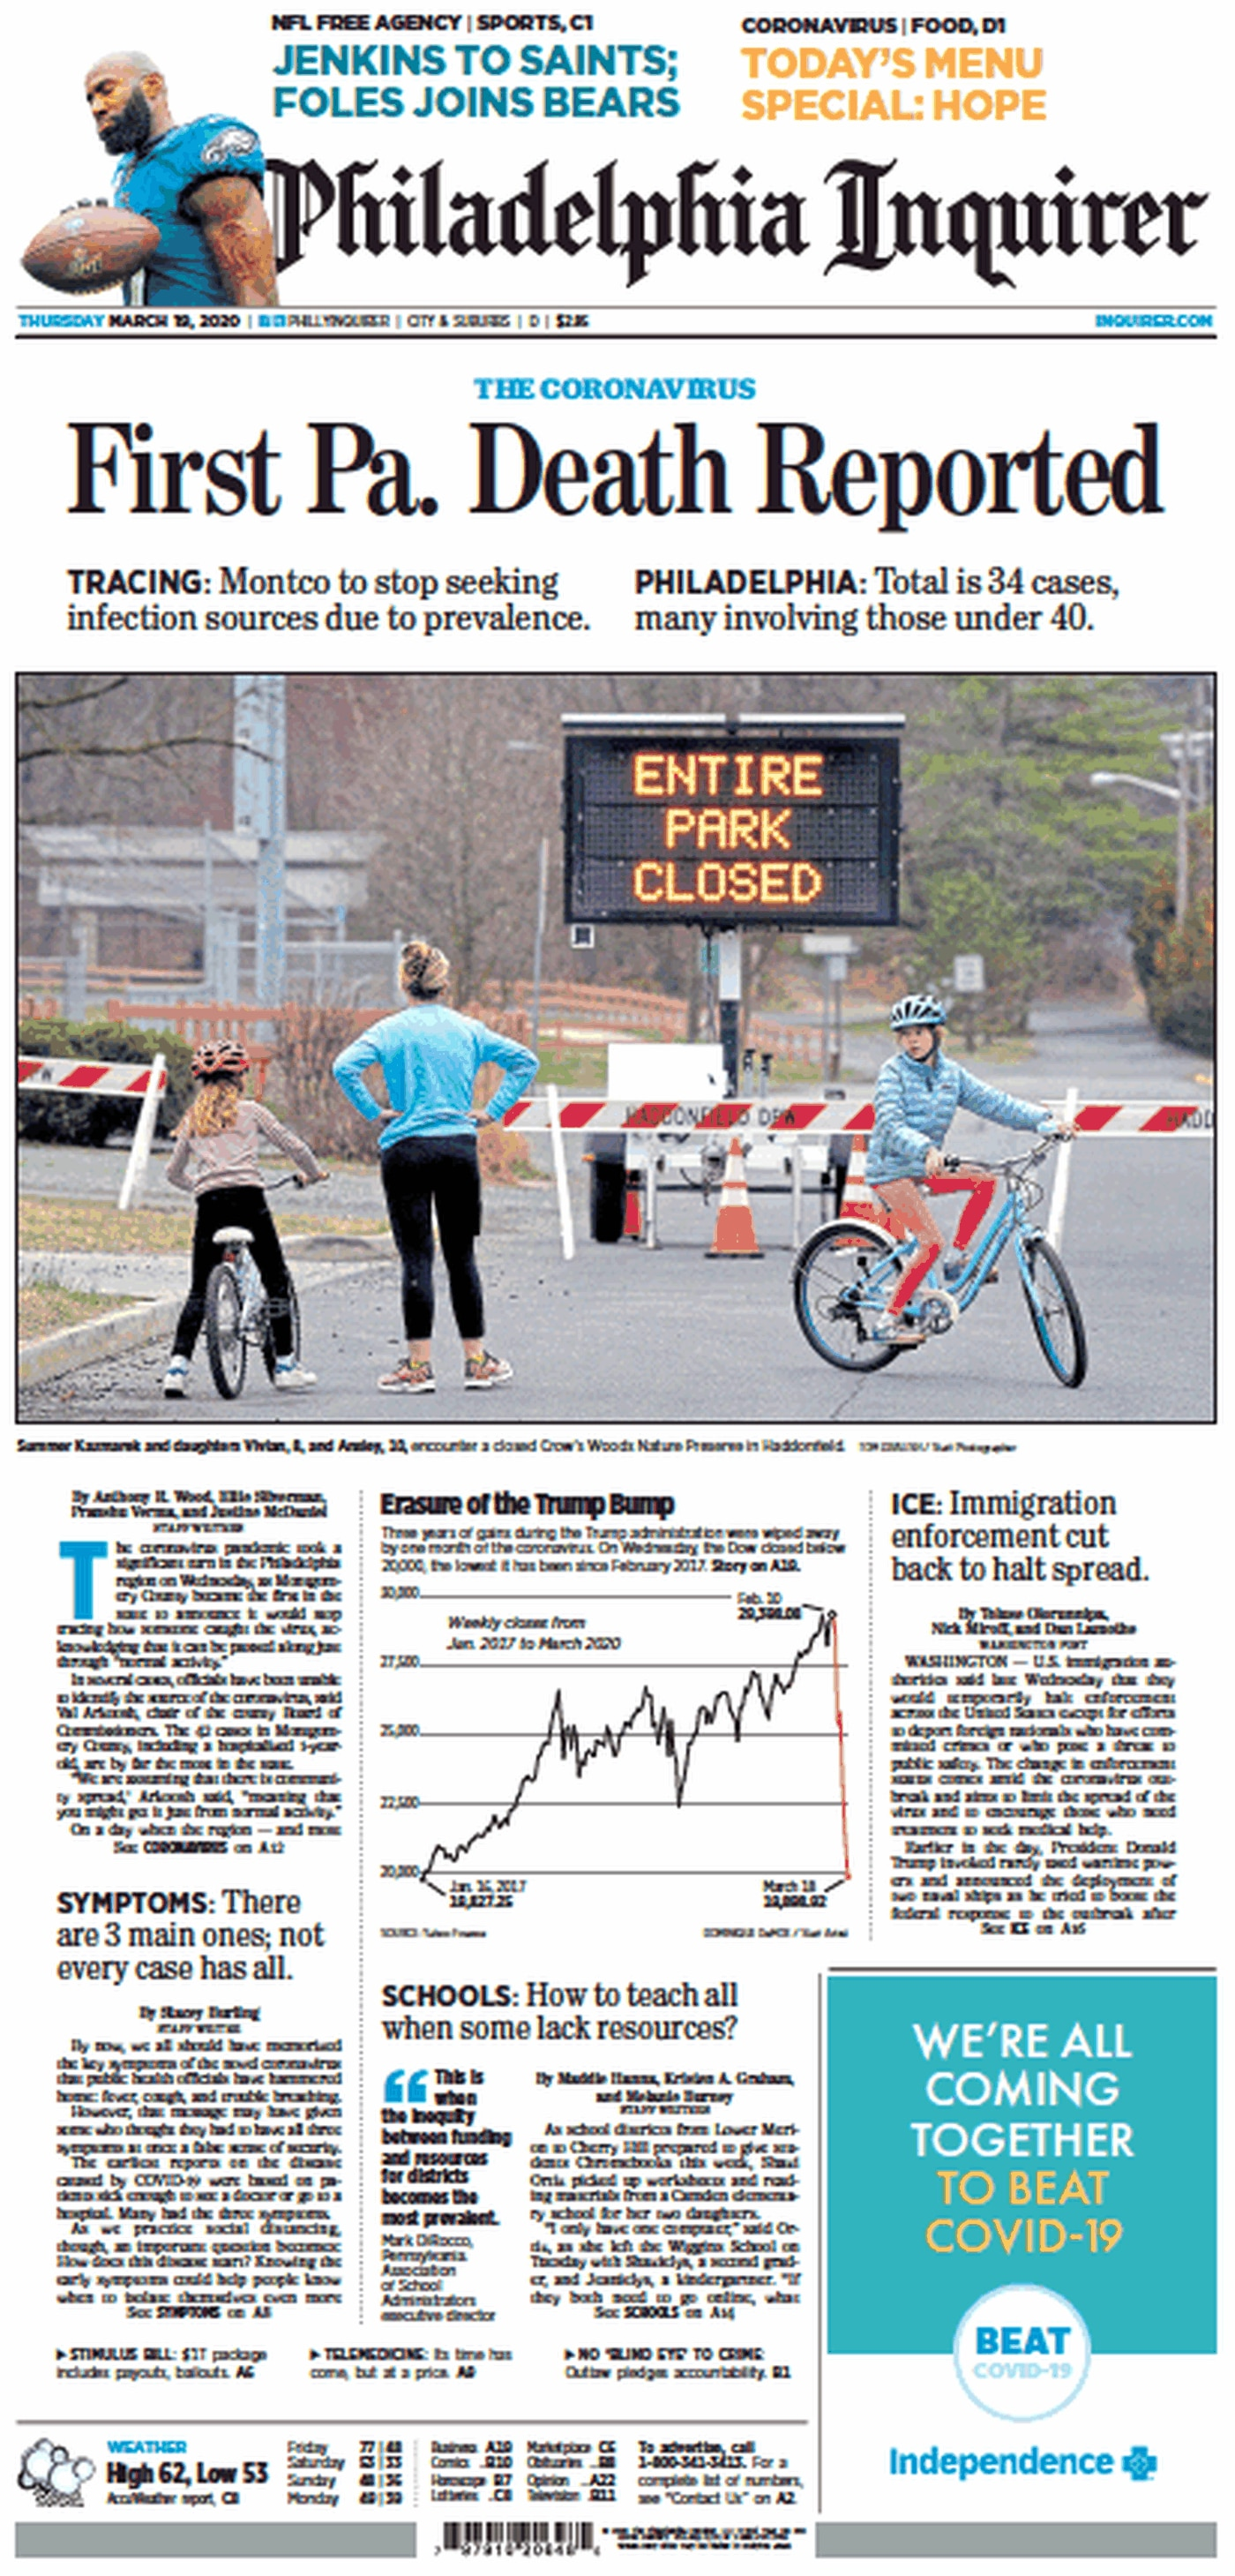 Front page of the Philadelphia Inquirer for Thursday, March 19, 2020.